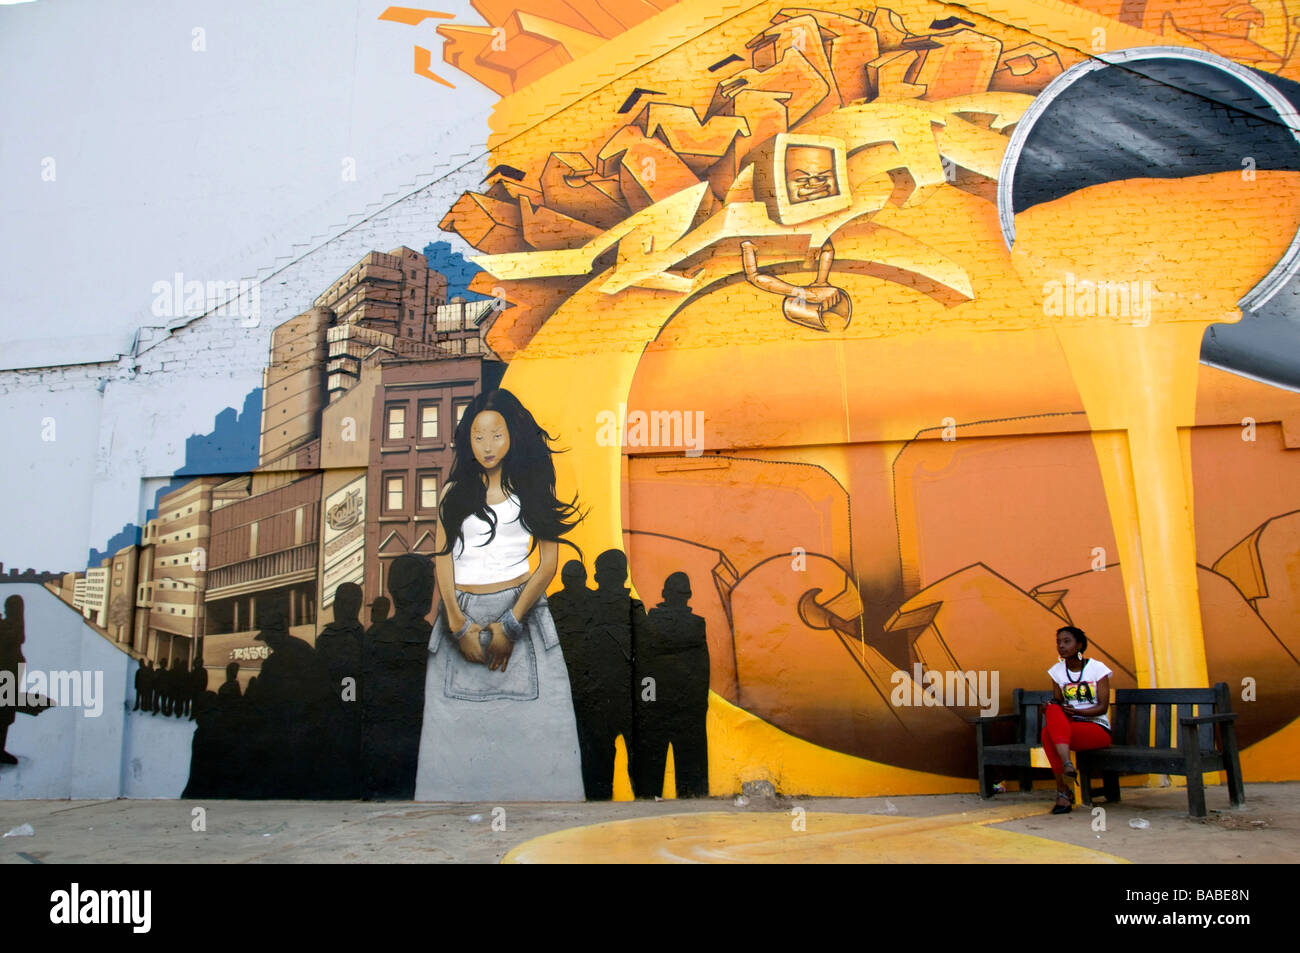 Mural Newtown Johannesburg South Africa - Stock Image